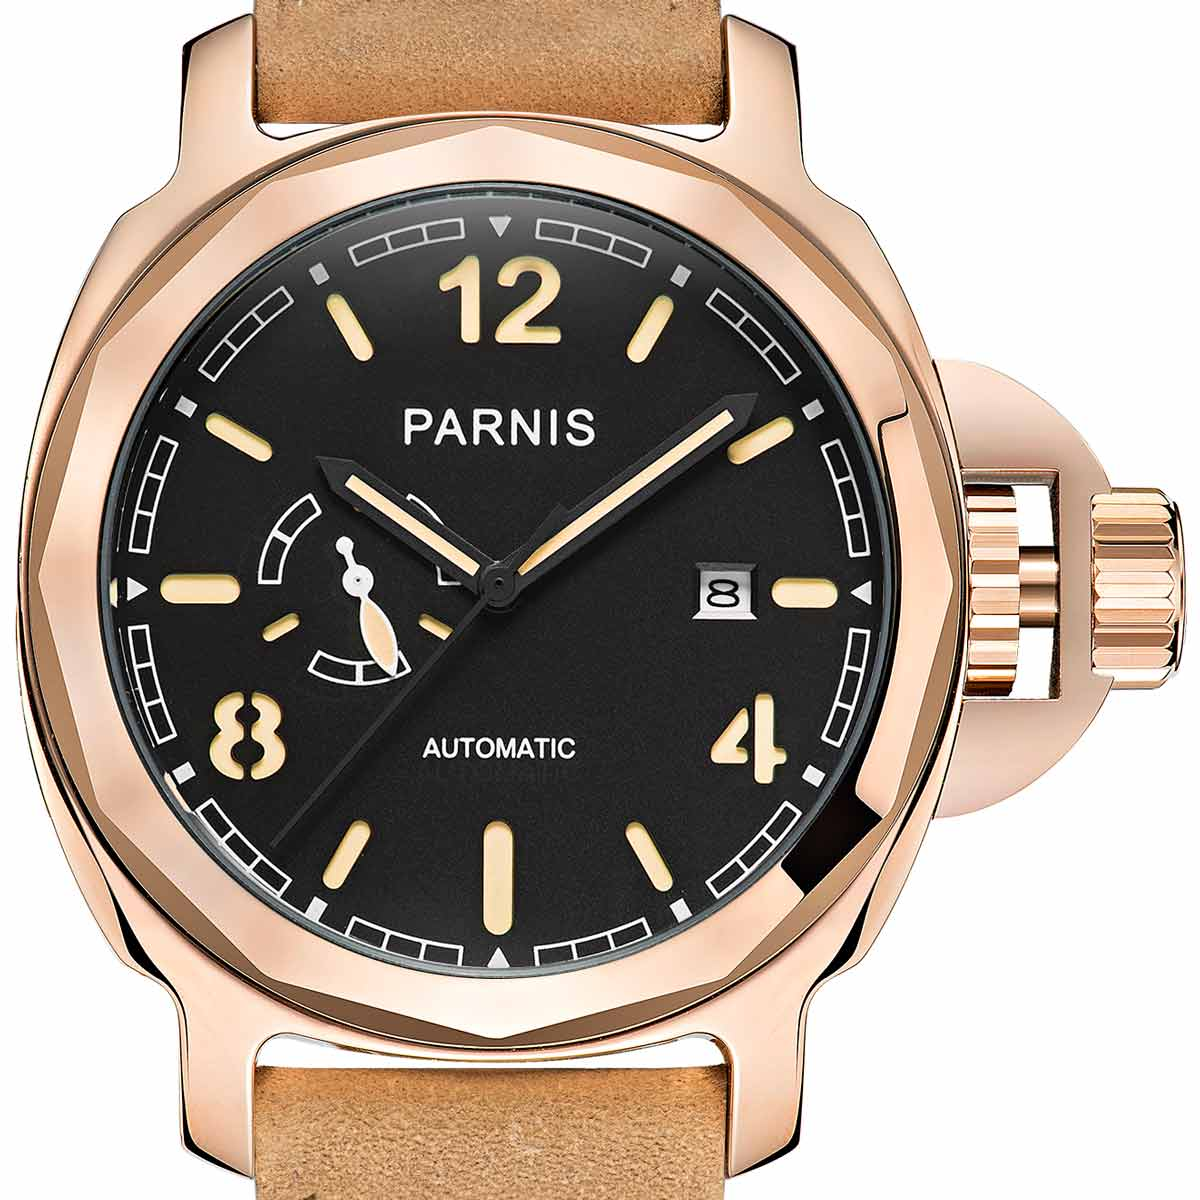 PARNIS Parnis self-winding wristwatch [PA6027-S3AL-RGBK] parallel imports genuine case manufacturer warranty 12 months 10P01Oct16.